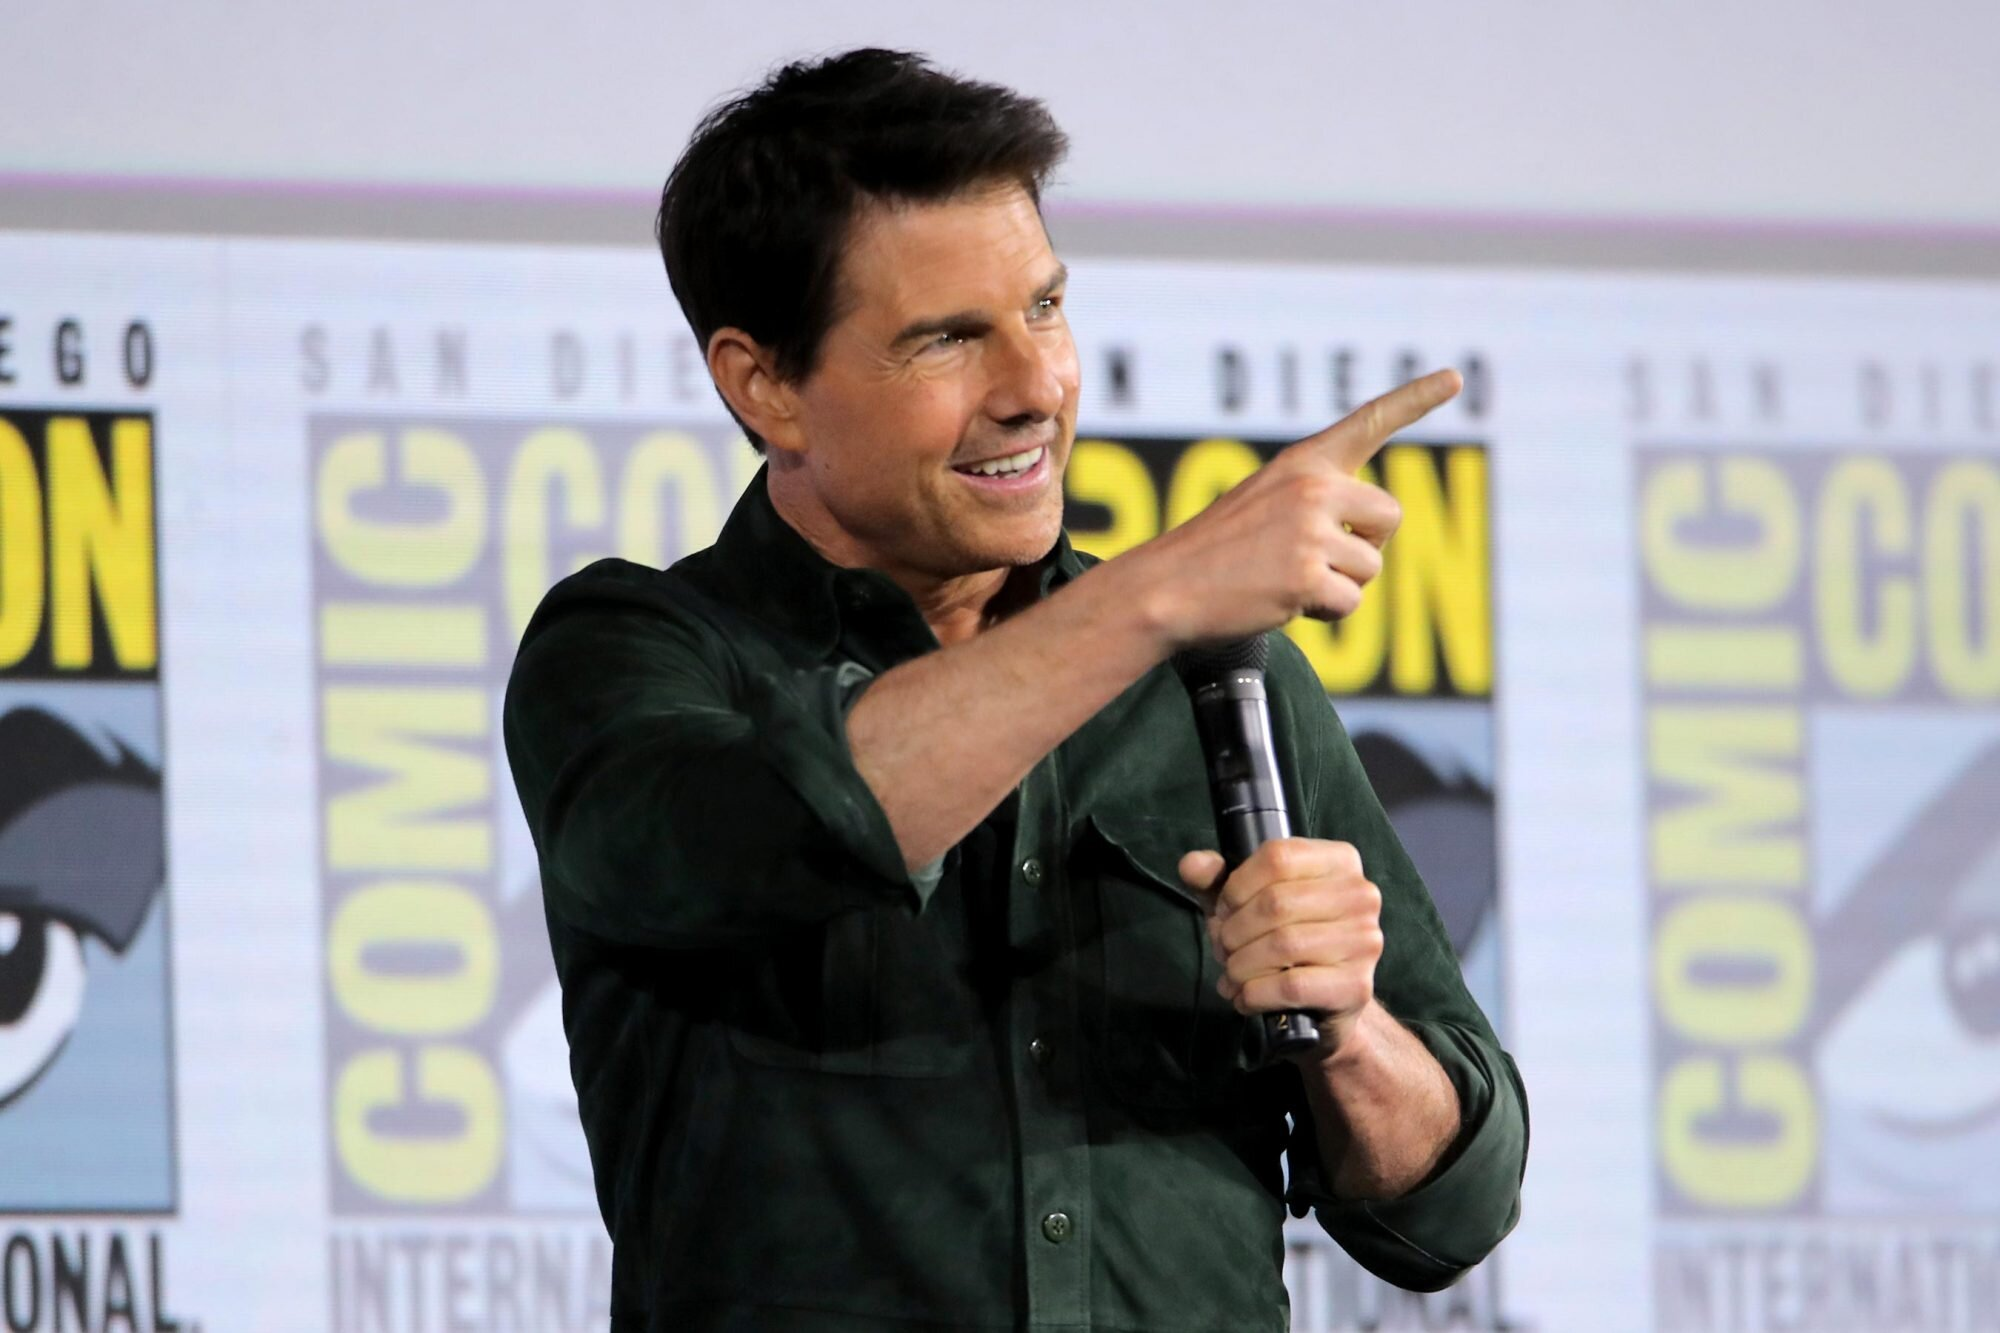 NASA, Elon Musk Confirm Tom Cruise Will Film a Movie in Space ...